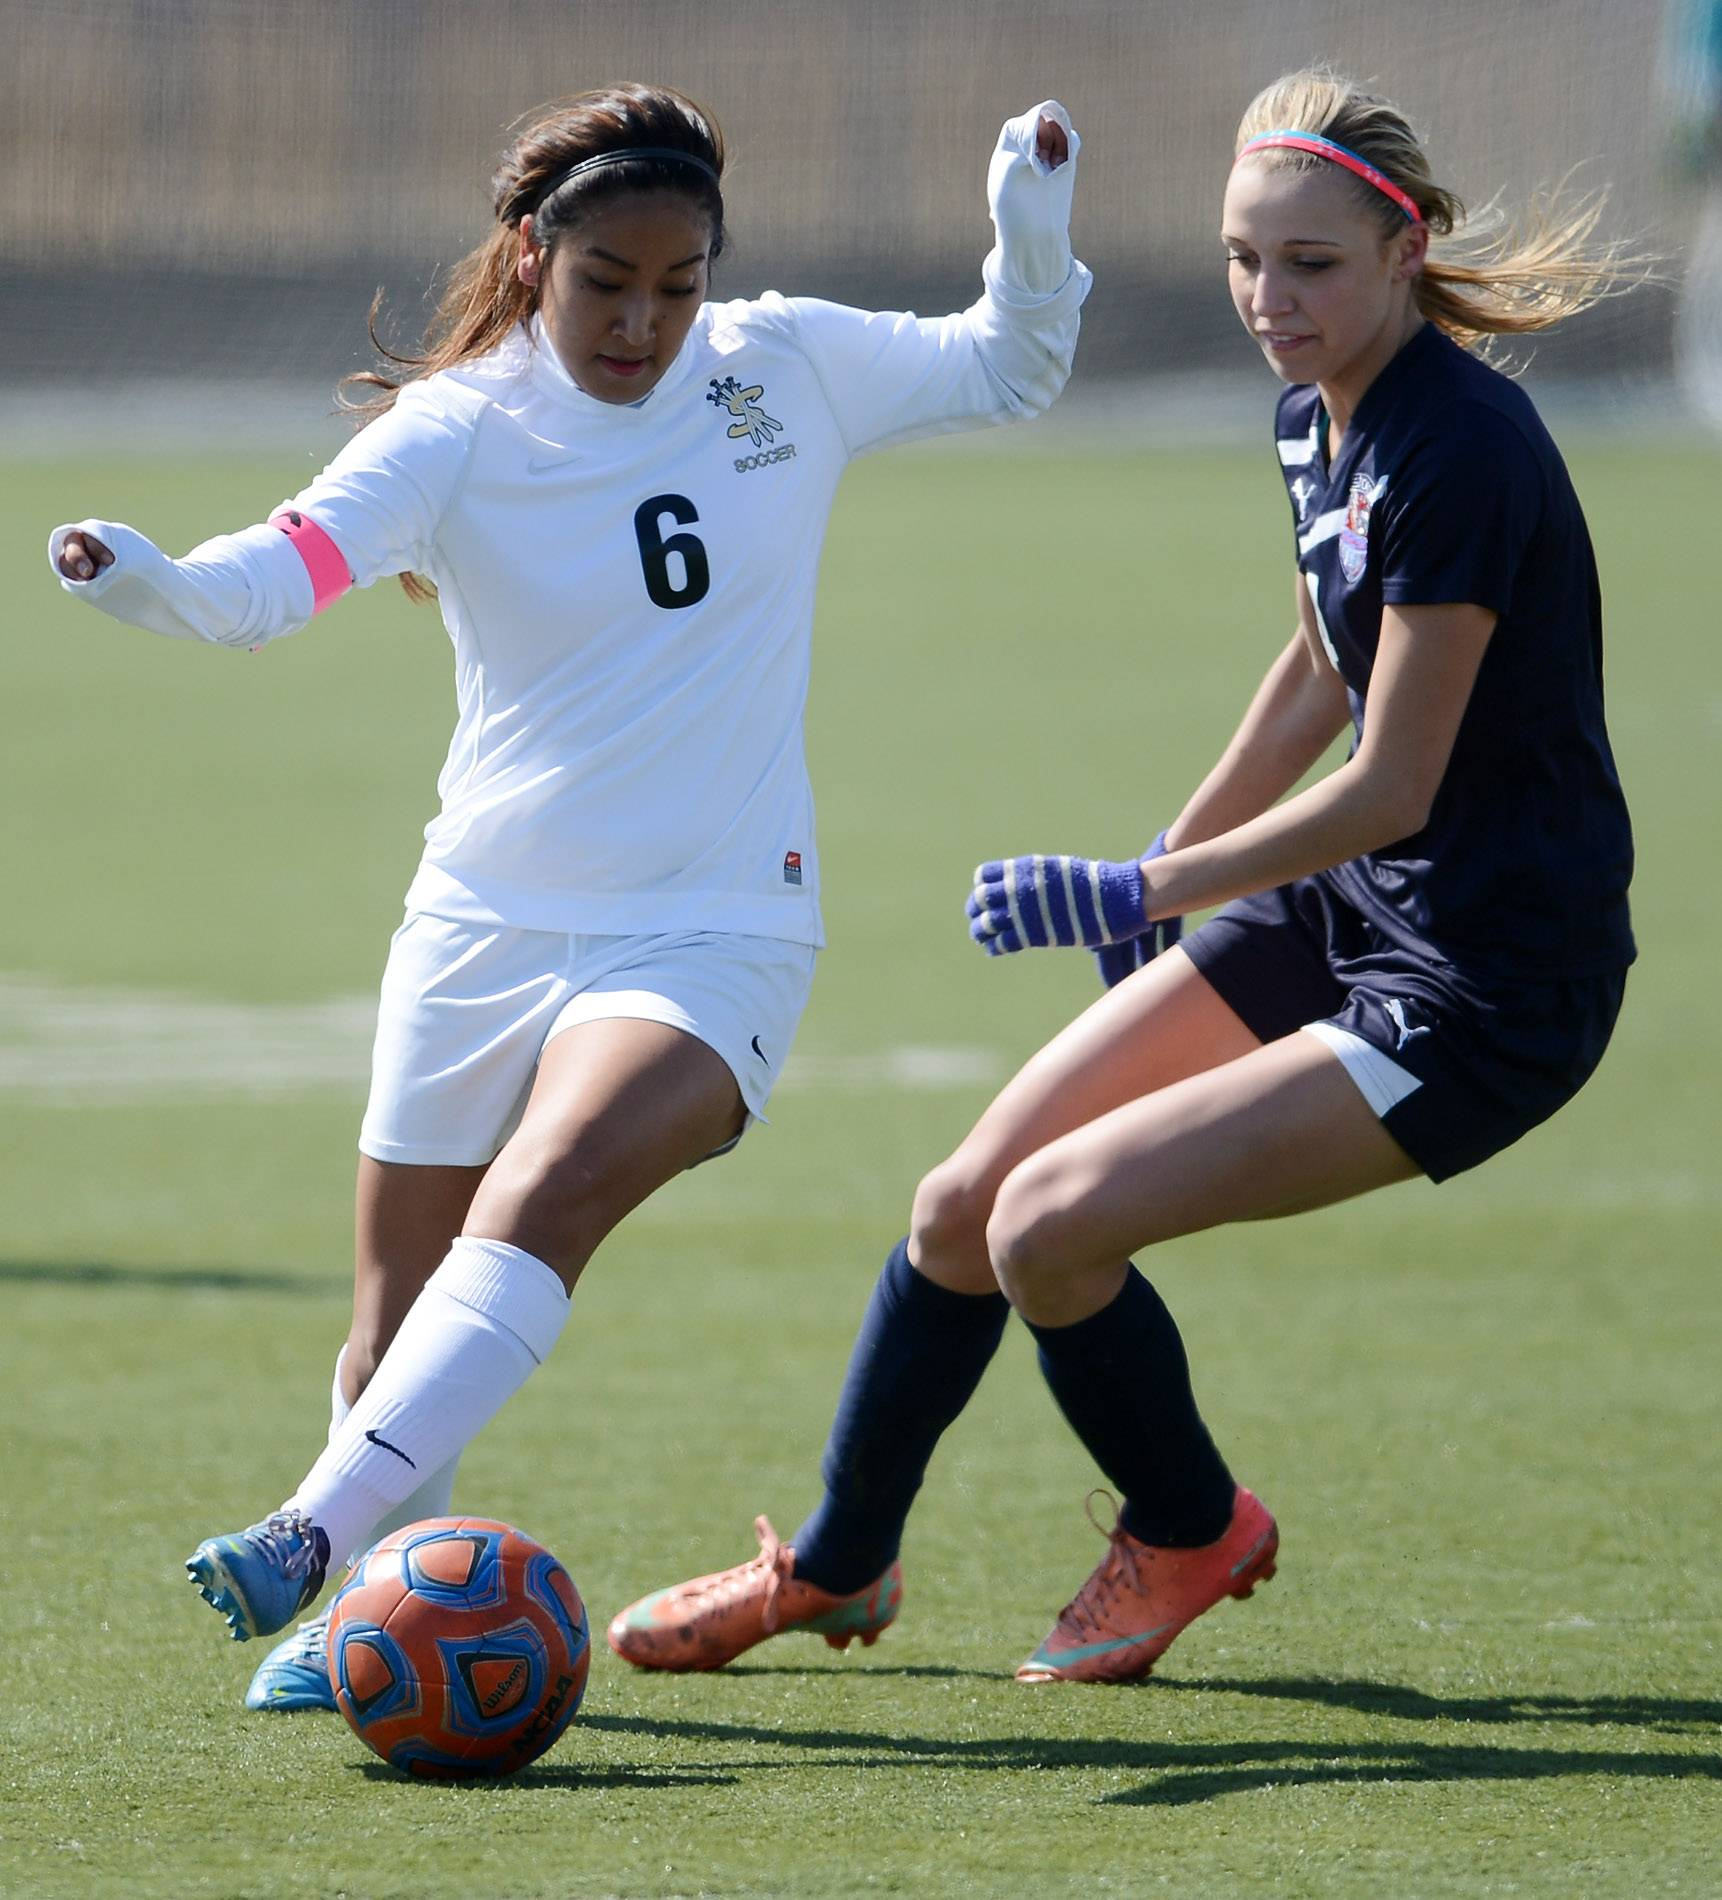 Streamwood's Erika Delgado tries to cut past South Elgin's Savanah Uveges during soccer action in Streamwood Wednesday.